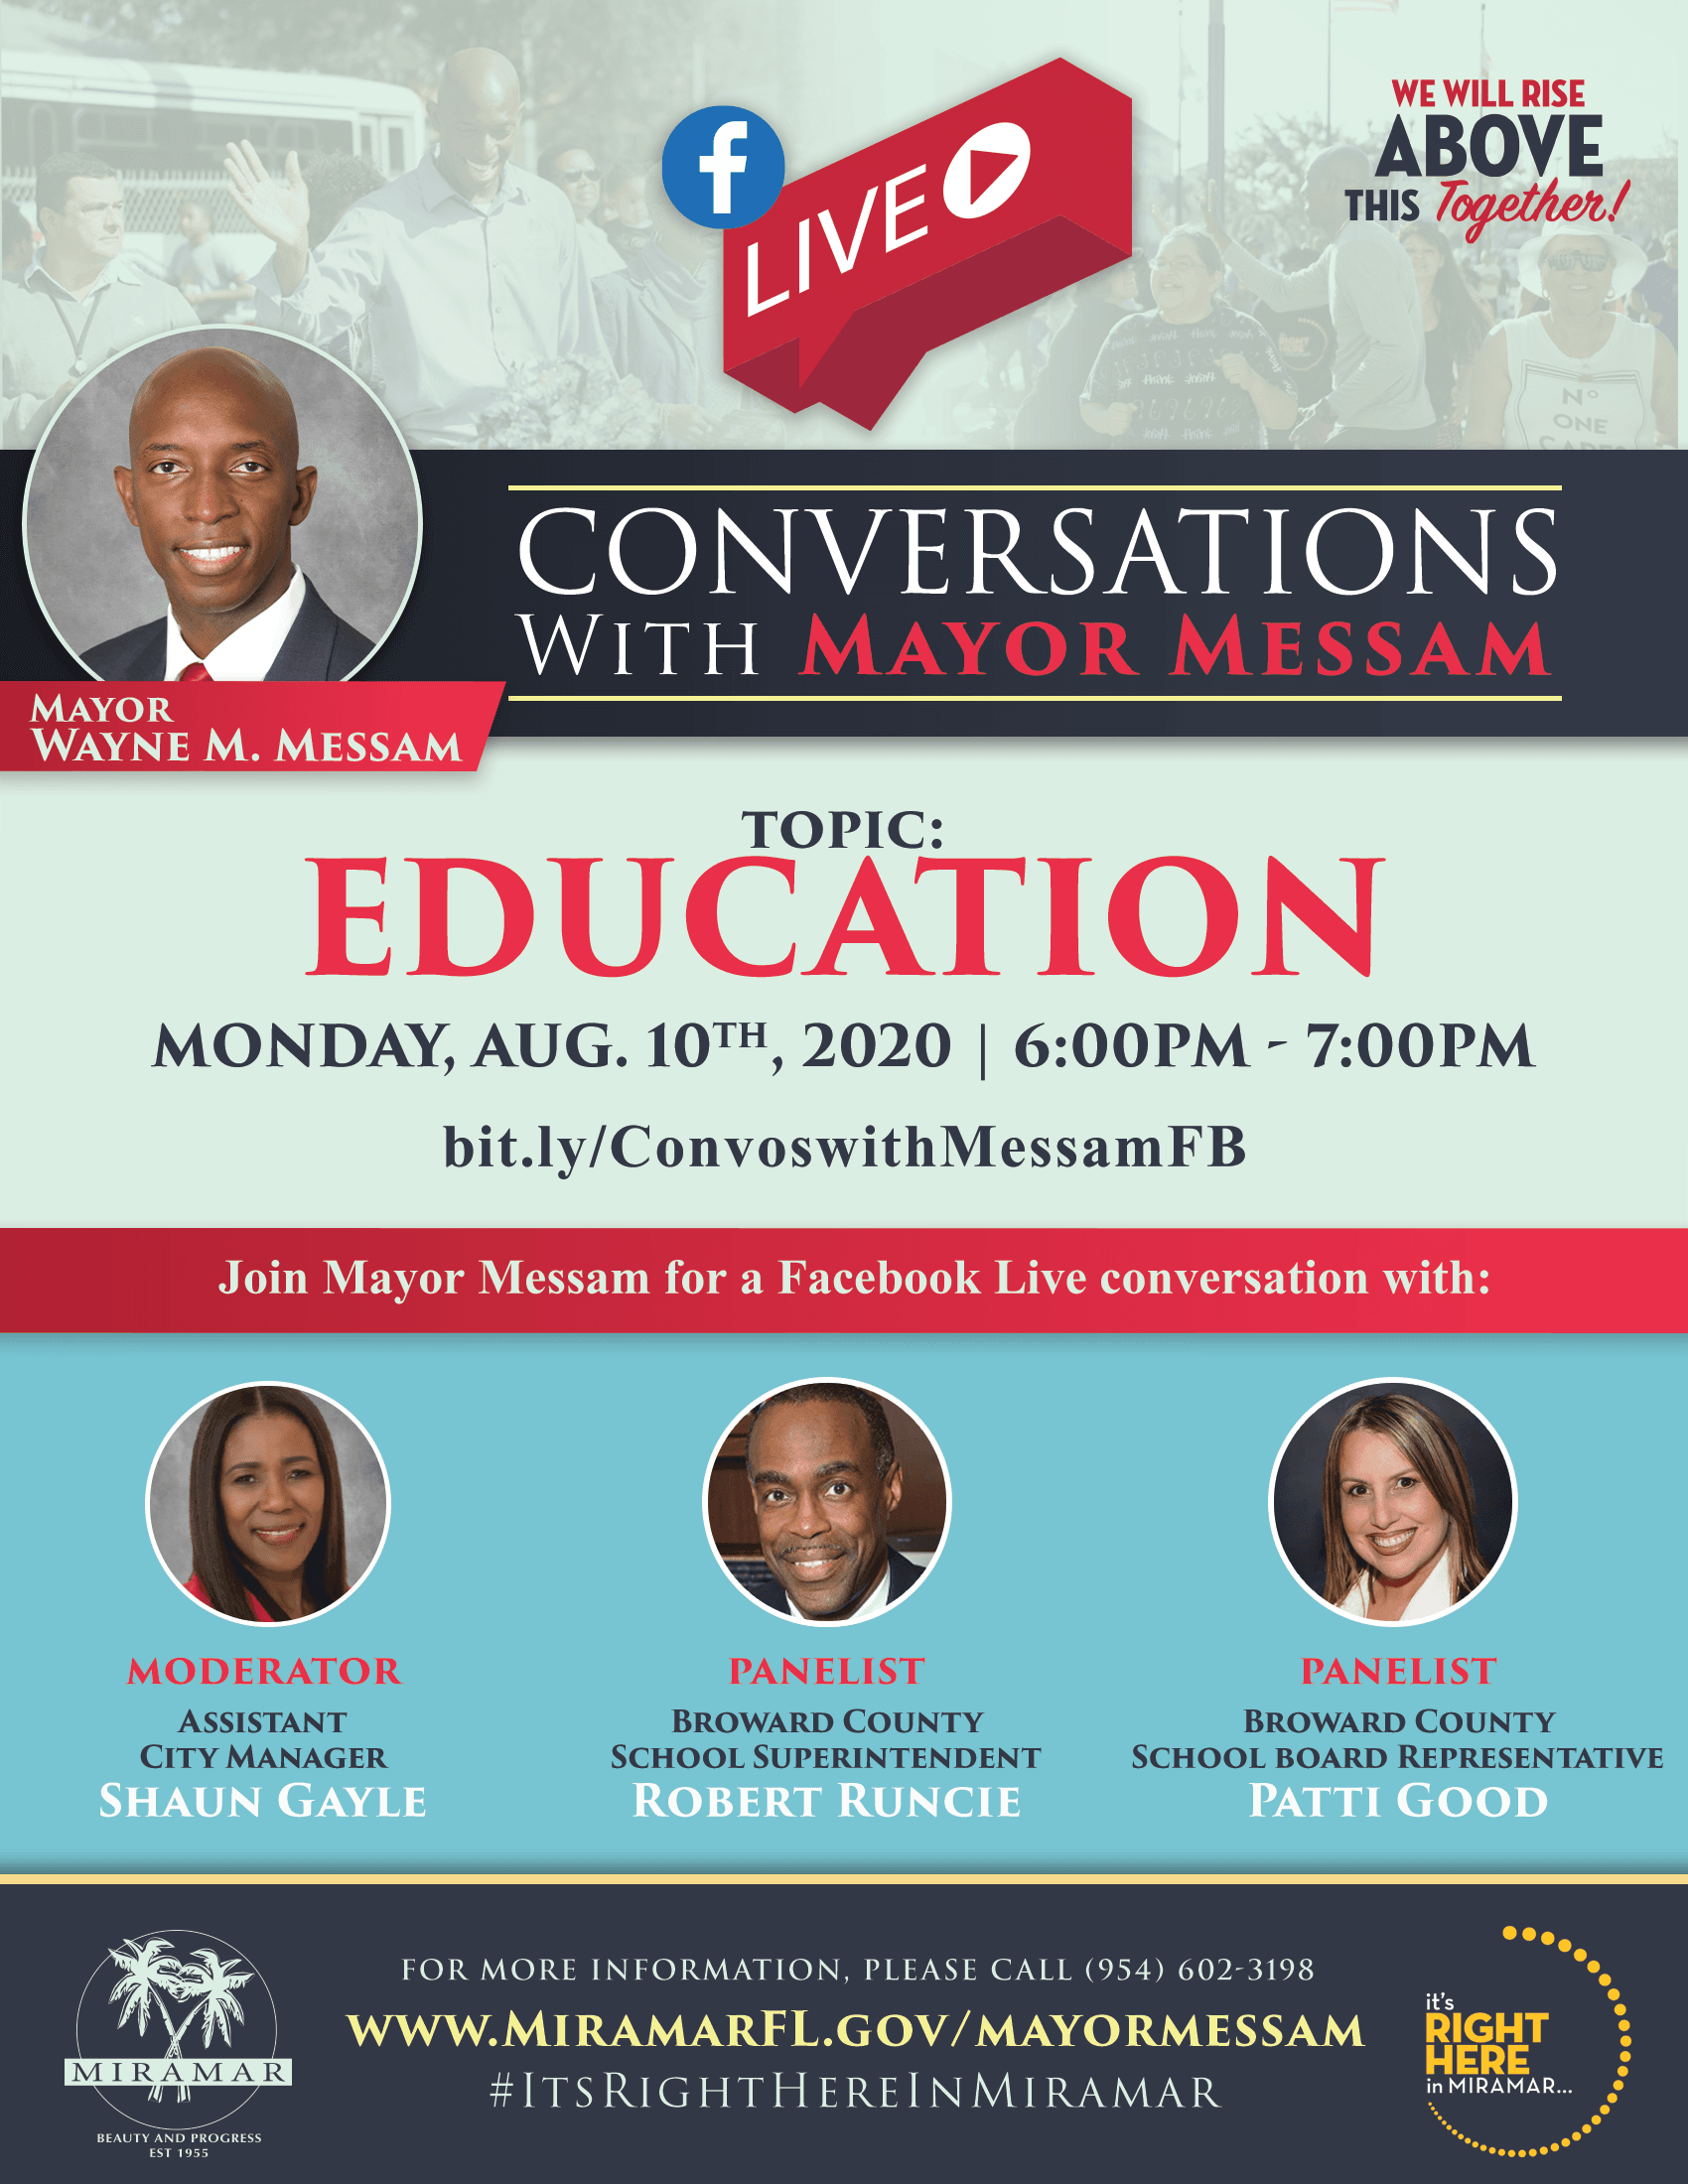 Conversations with Mayor Messam 0810 - Flyer